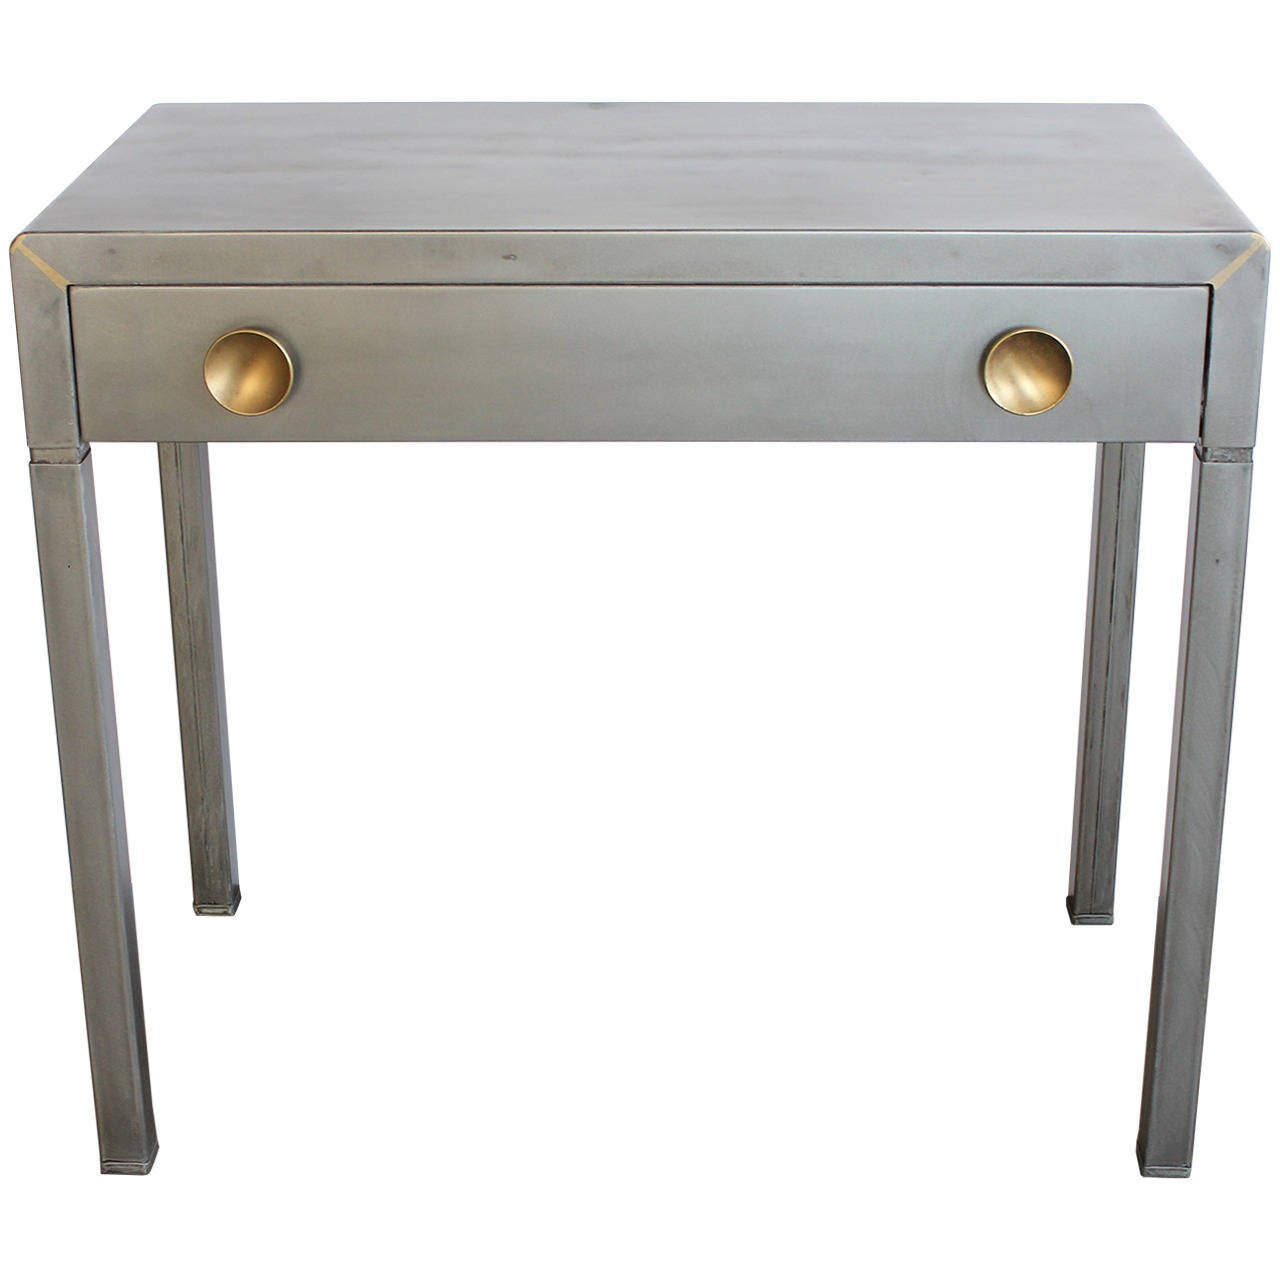 Stylish 1920s Industrial Metal Desk By Simmons At 1stdibs